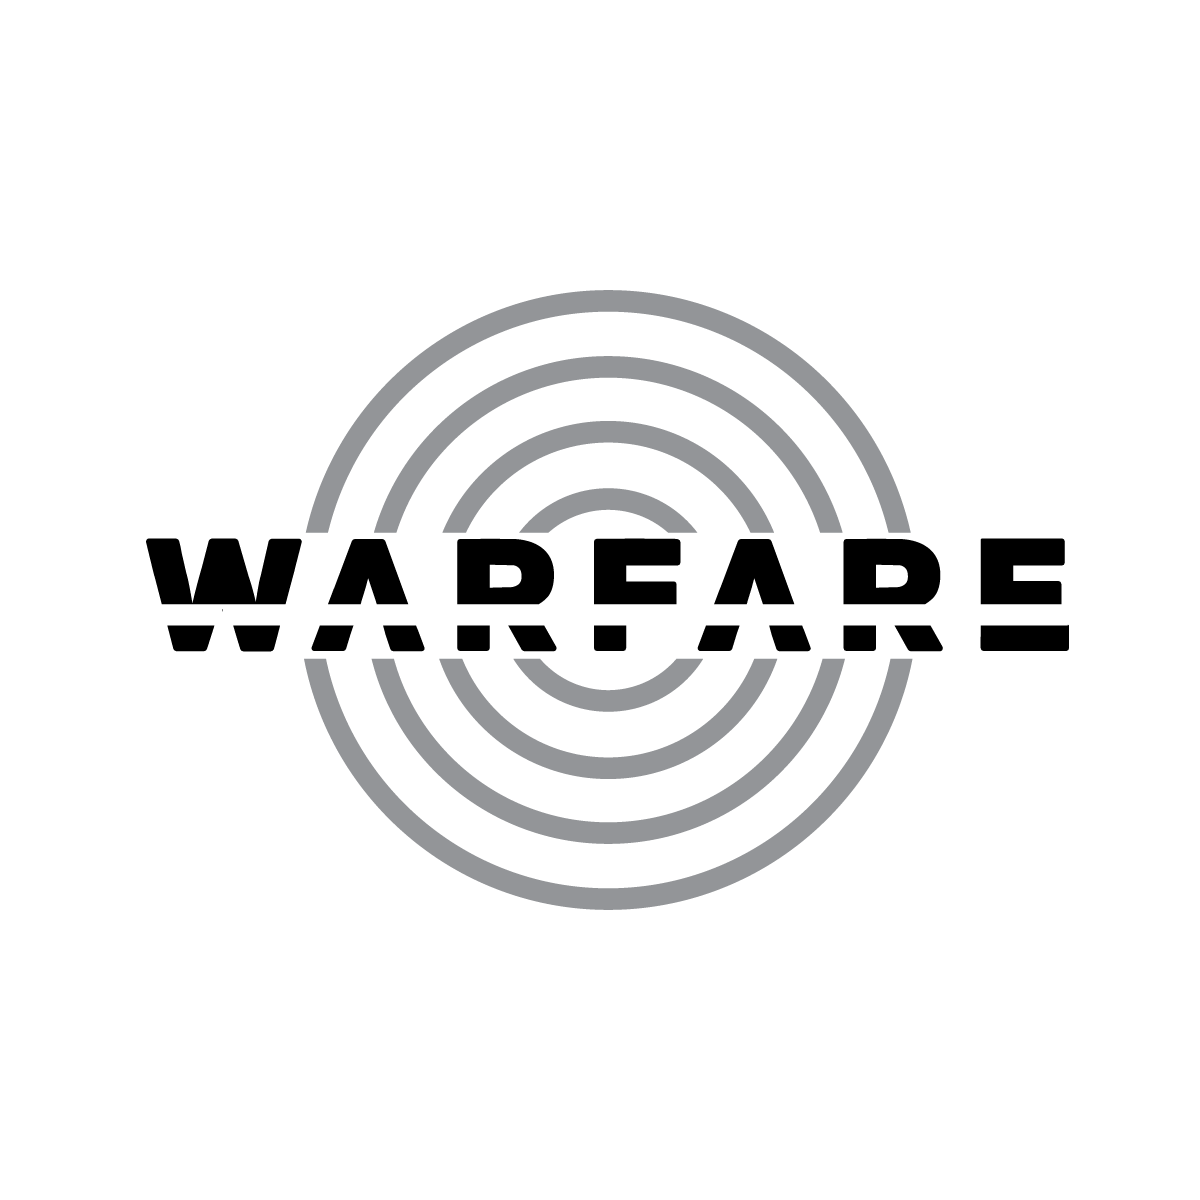 warfare-01.png